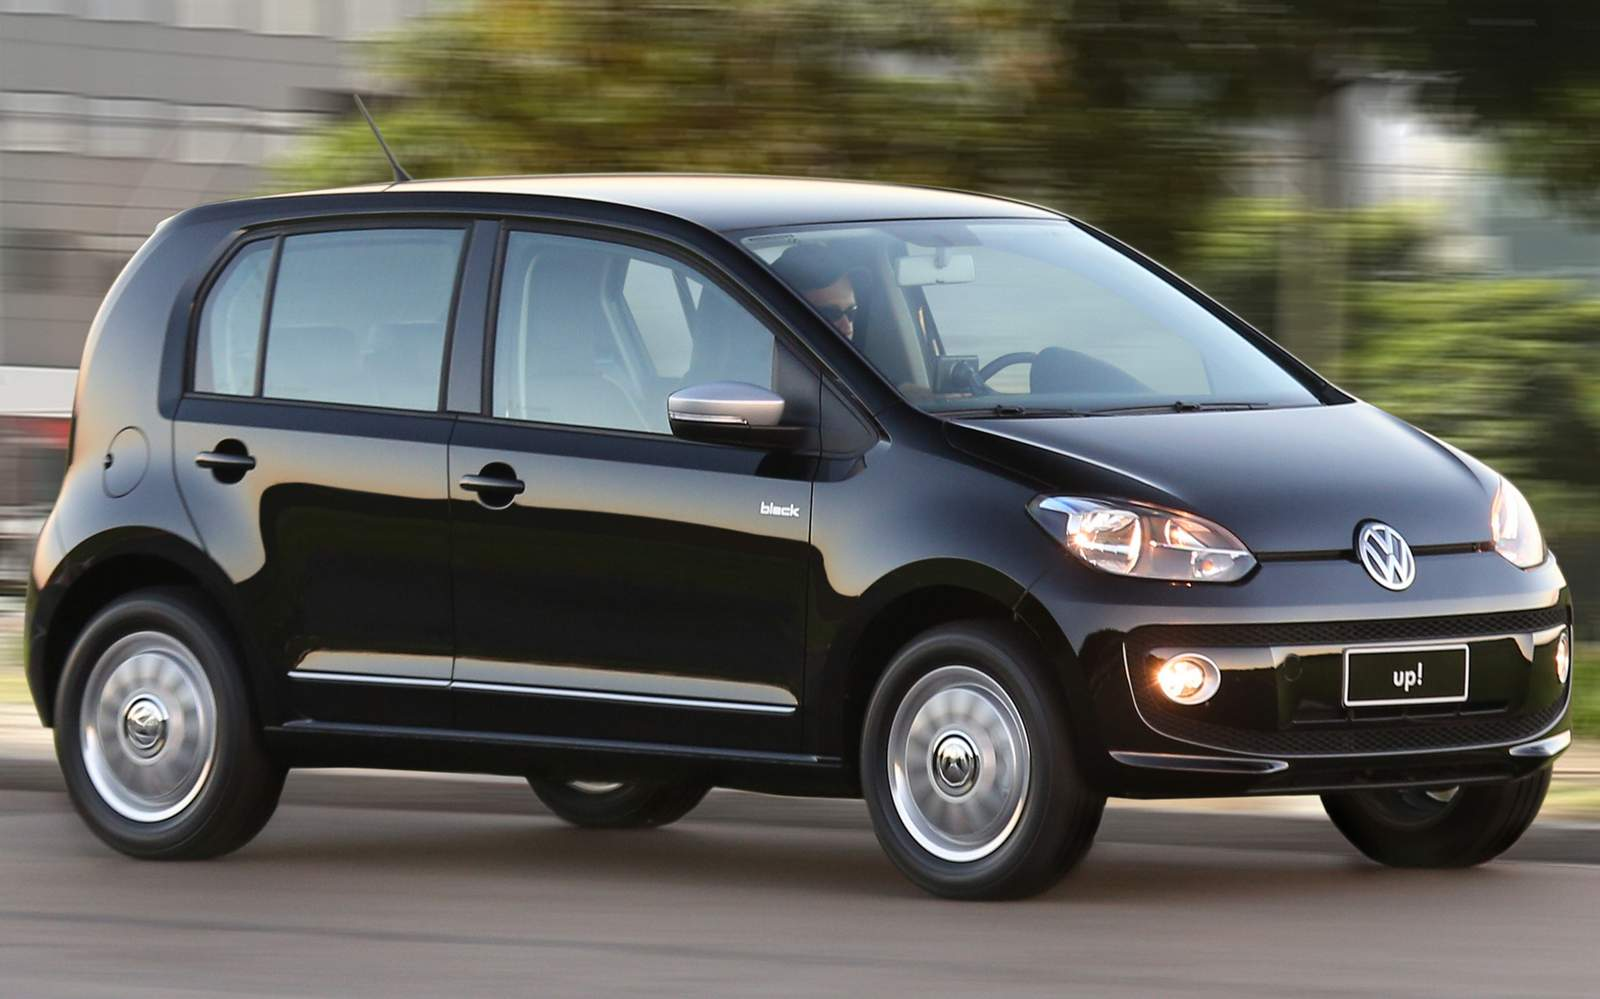 Volkswagen Up! 2014 - Preto